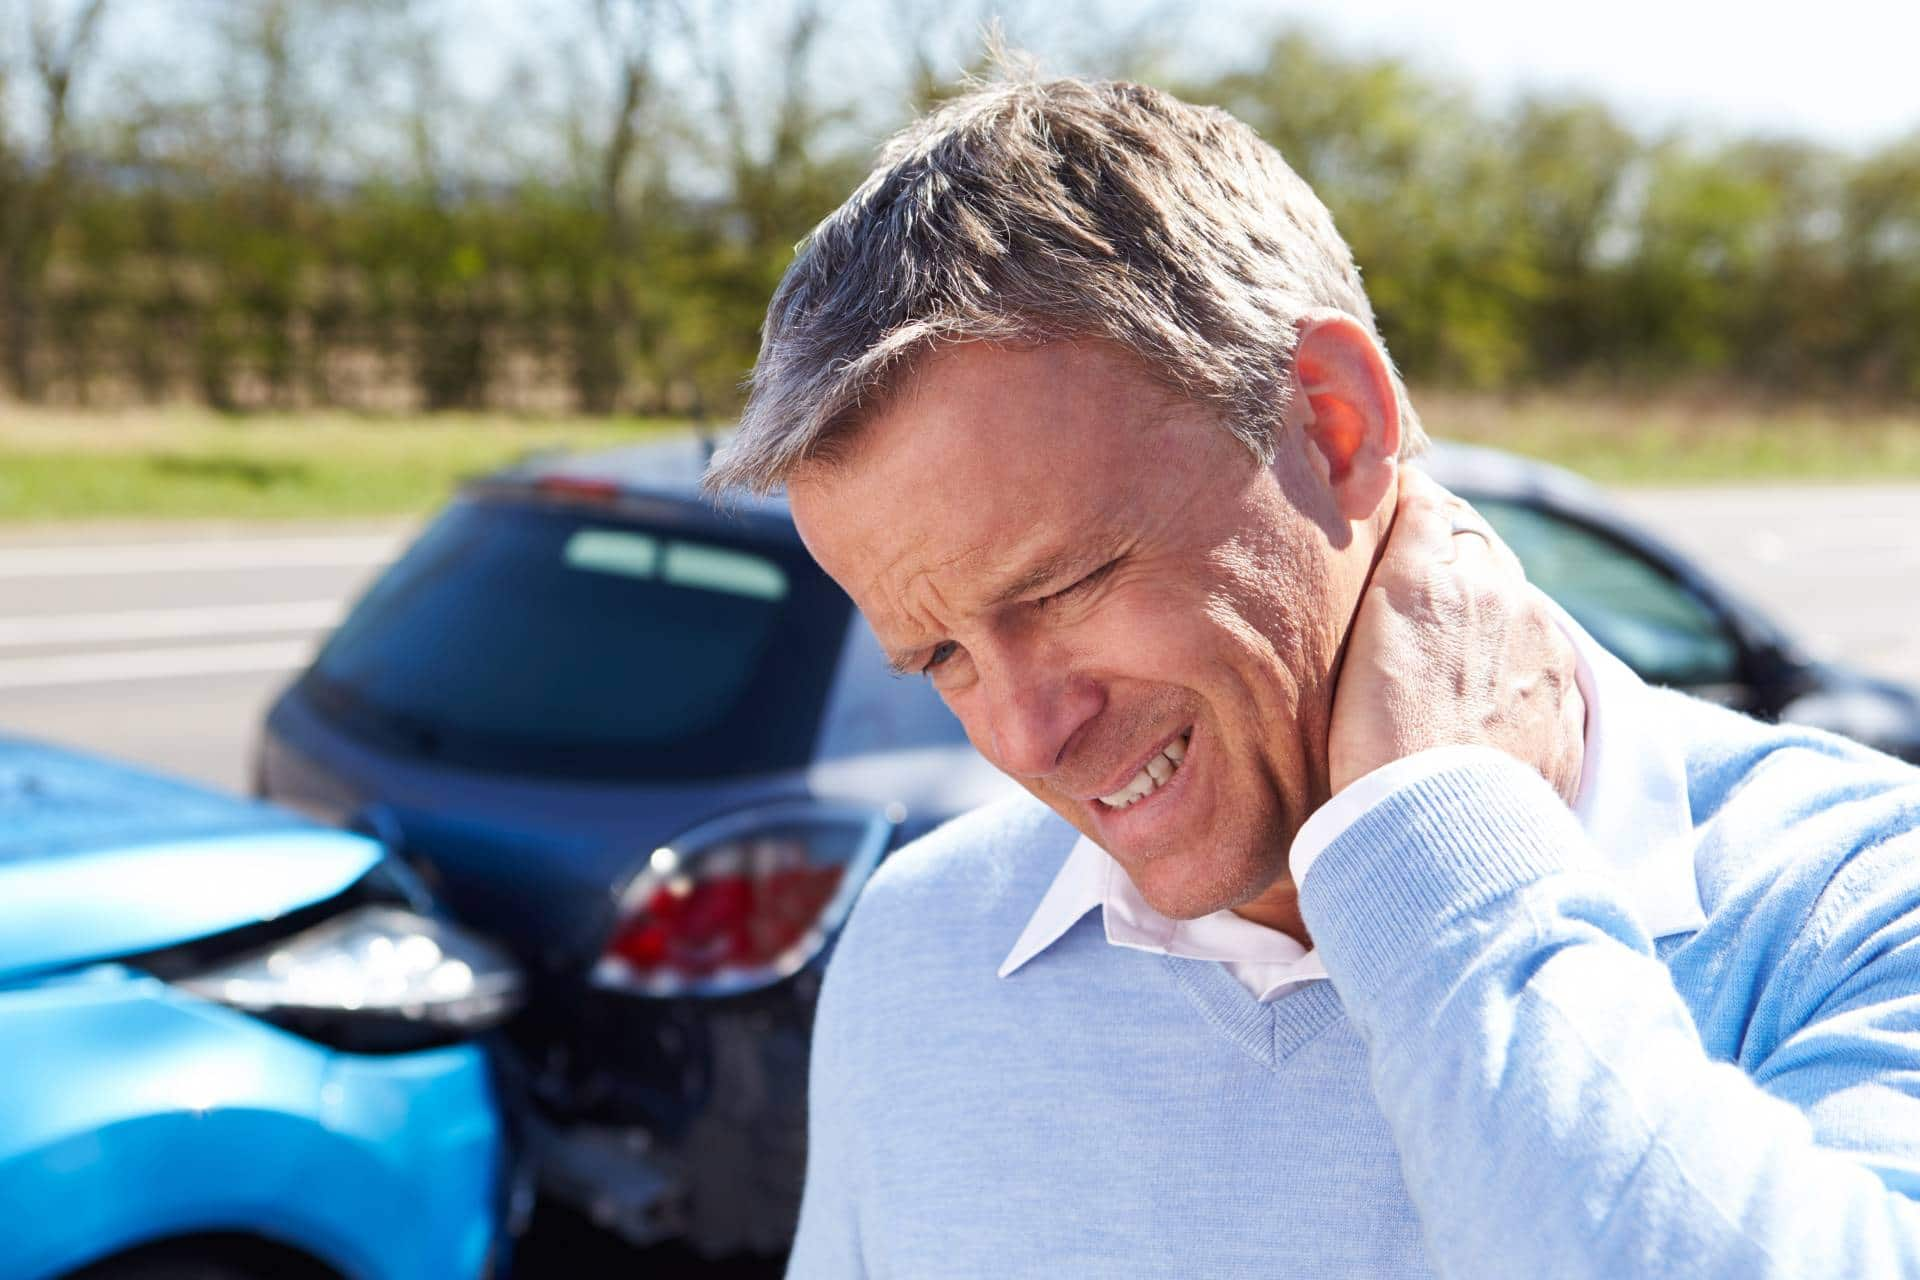 Injured in an auto accident? Schedule a free consultation with our personal injury lawyers at the Angell Law Firm in Cartersville.